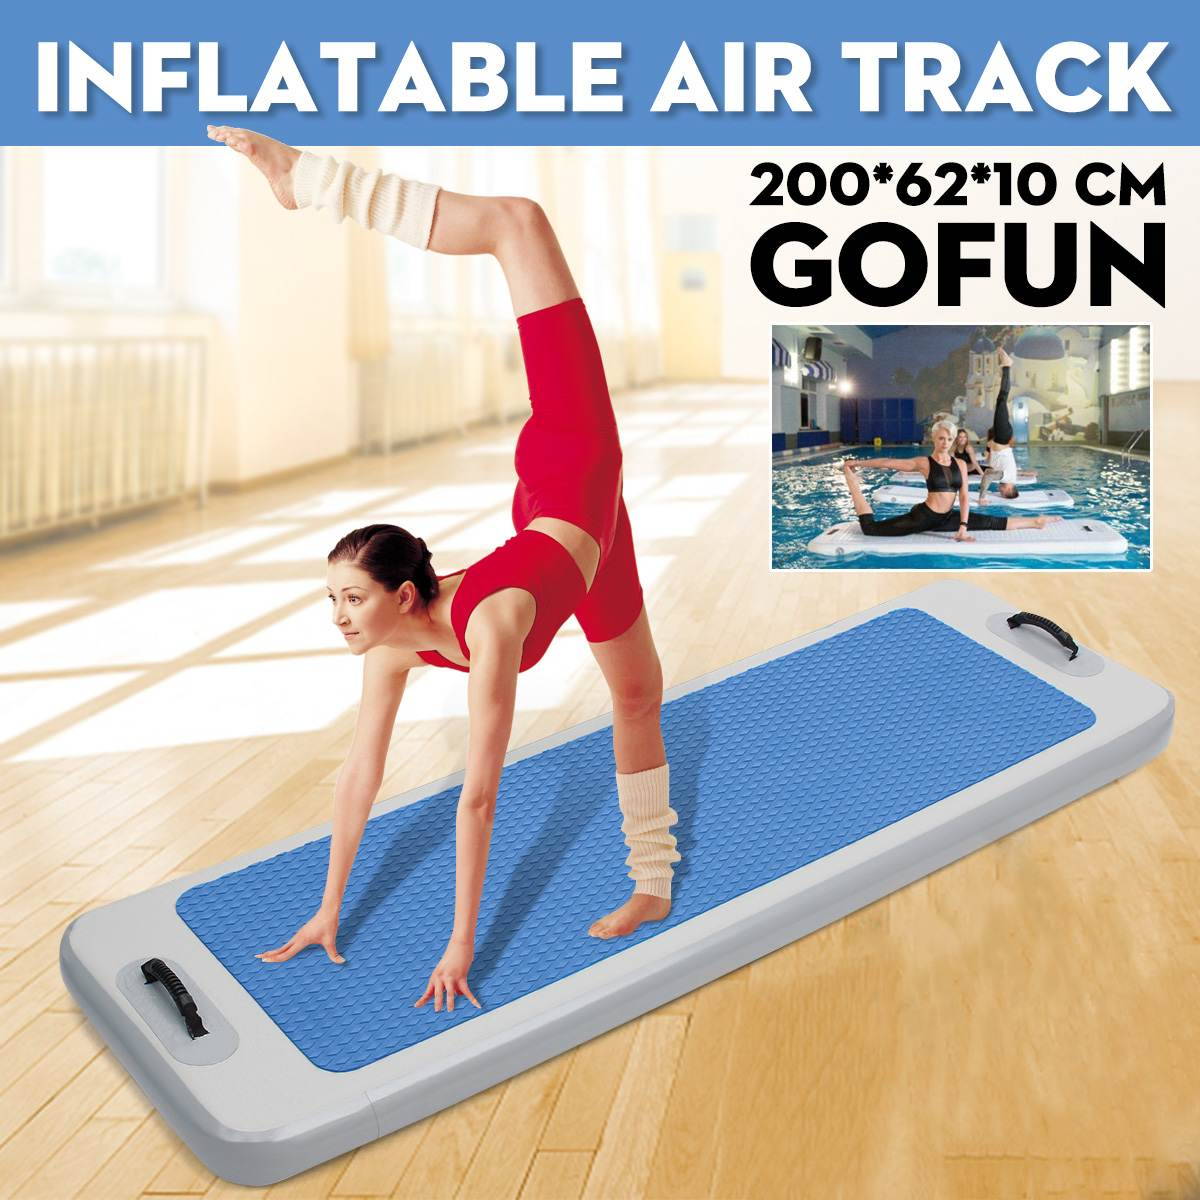 NEW Inflatable Floating Yoga Mat Air Tumbling Track For Gymnastics DWFPaddle Boards Yoga Air Mattress Mat With Air PumpNEW Inflatable Floating Yoga Mat Air Tumbling Track For Gymnastics DWFPaddle Boards Yoga Air Mattress Mat With Air Pump